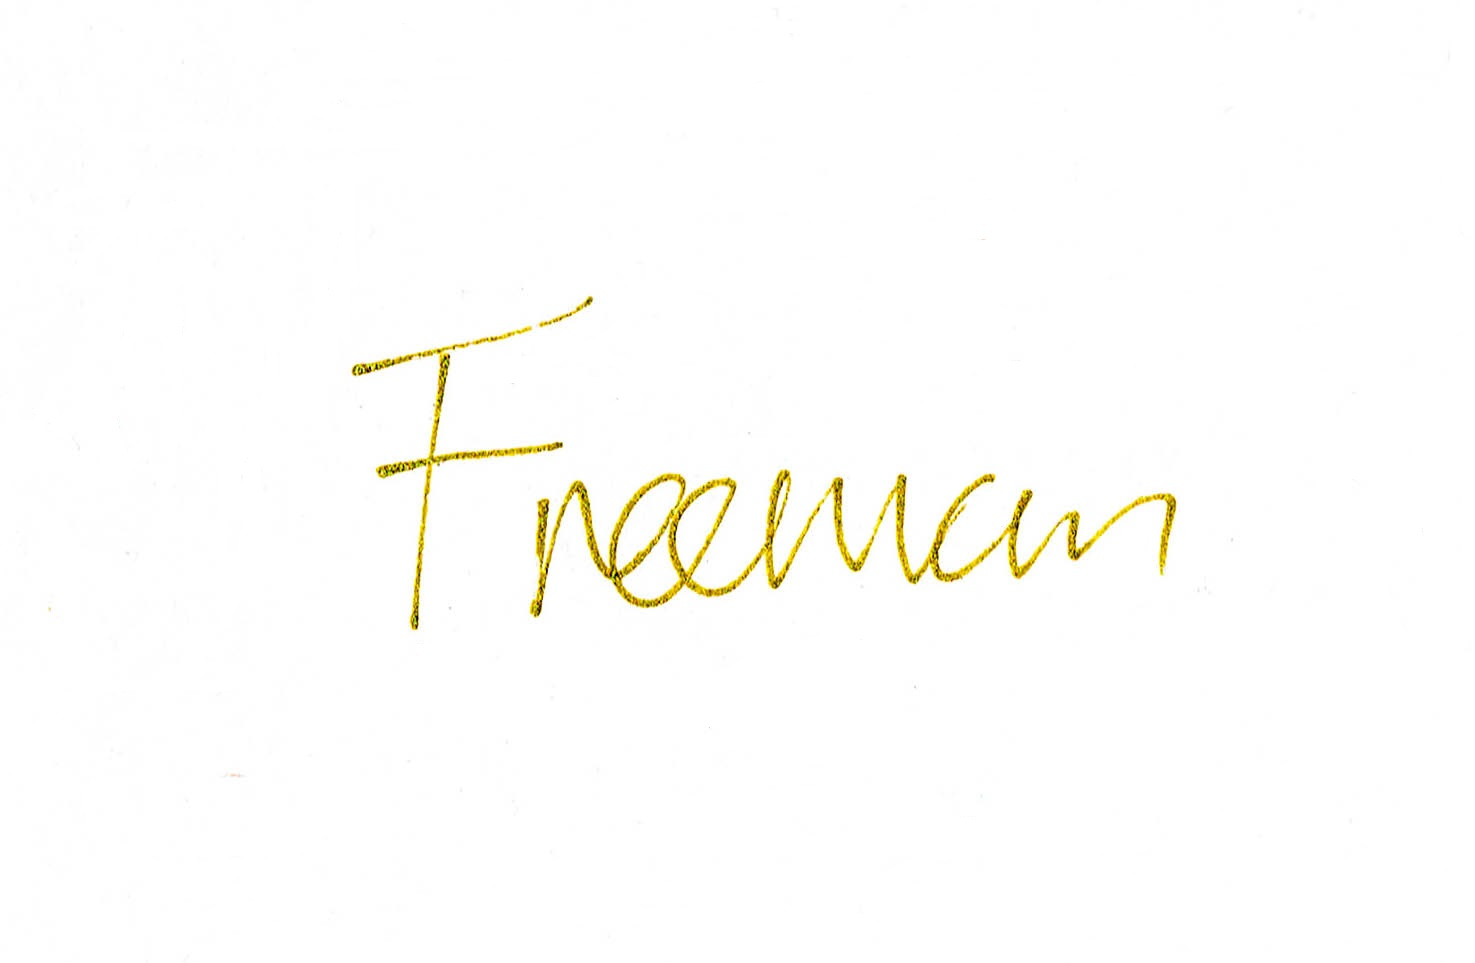 Freeman uk's Signature